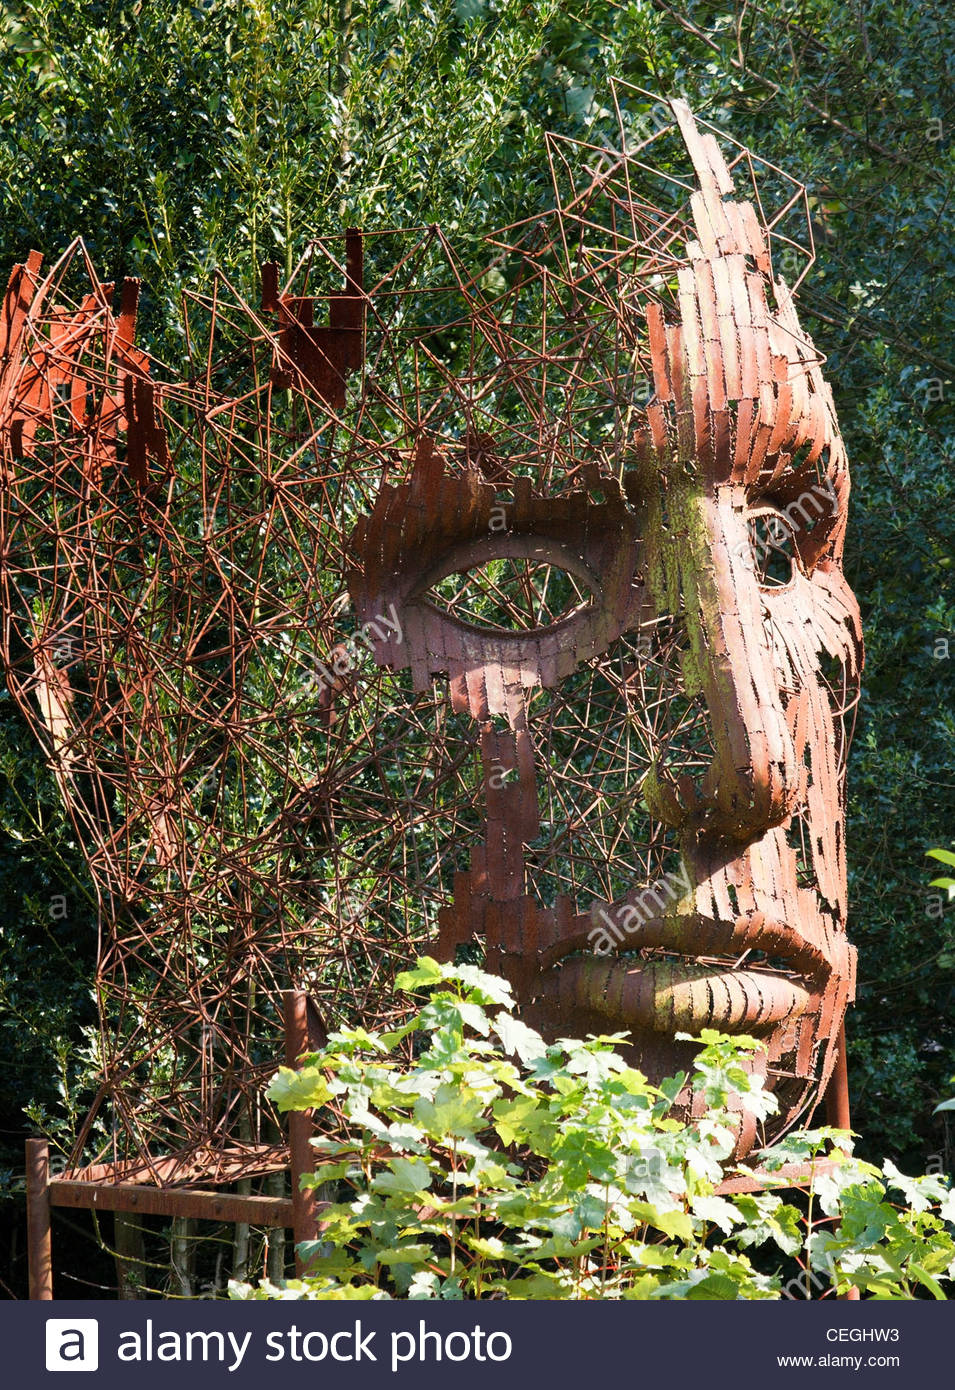 Rusted Steel Vertical Face Sculpture Amongst Trees In The Sculpture Garden,  Burghley House, Stamford, Lincolnshire, England, UK